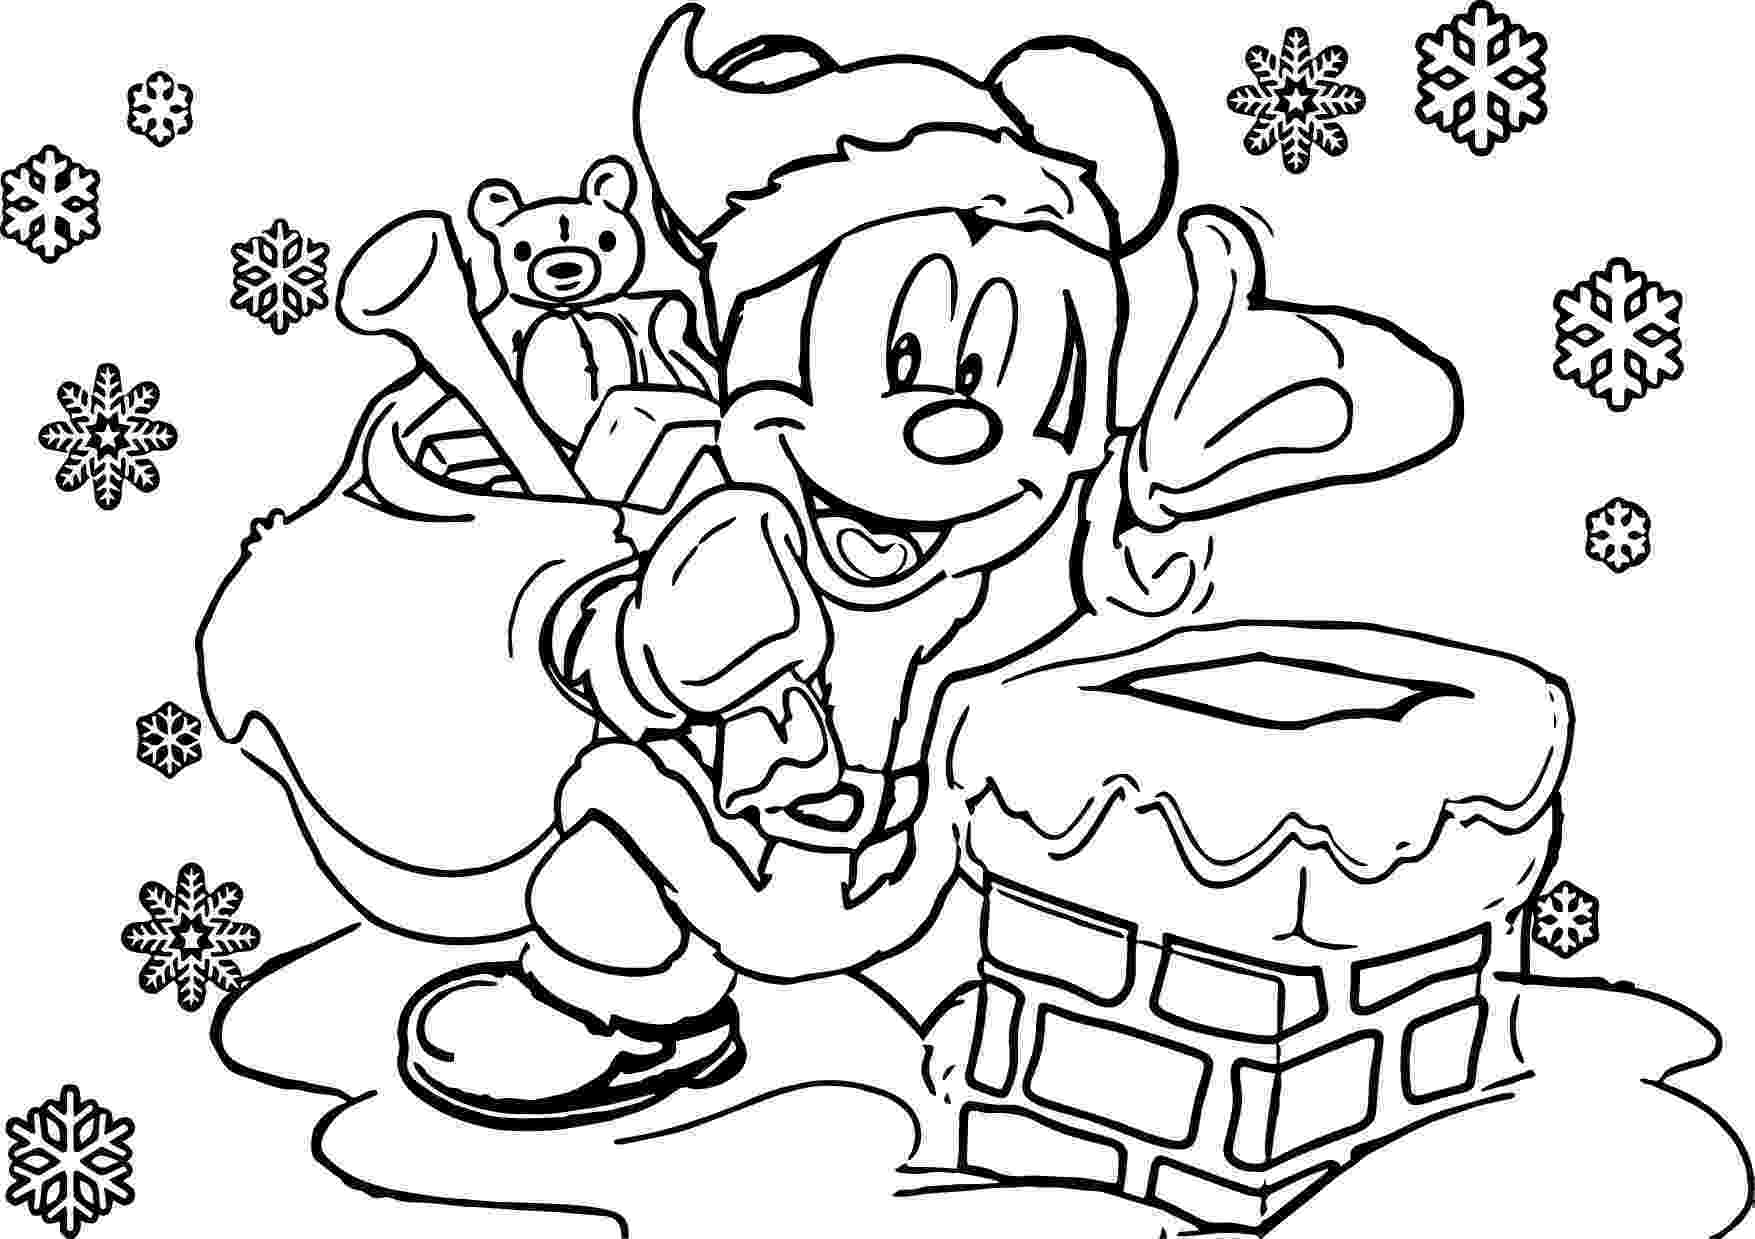 holiday coloring pictures disney christmas coloring pages wecoloringpagecom pictures holiday coloring